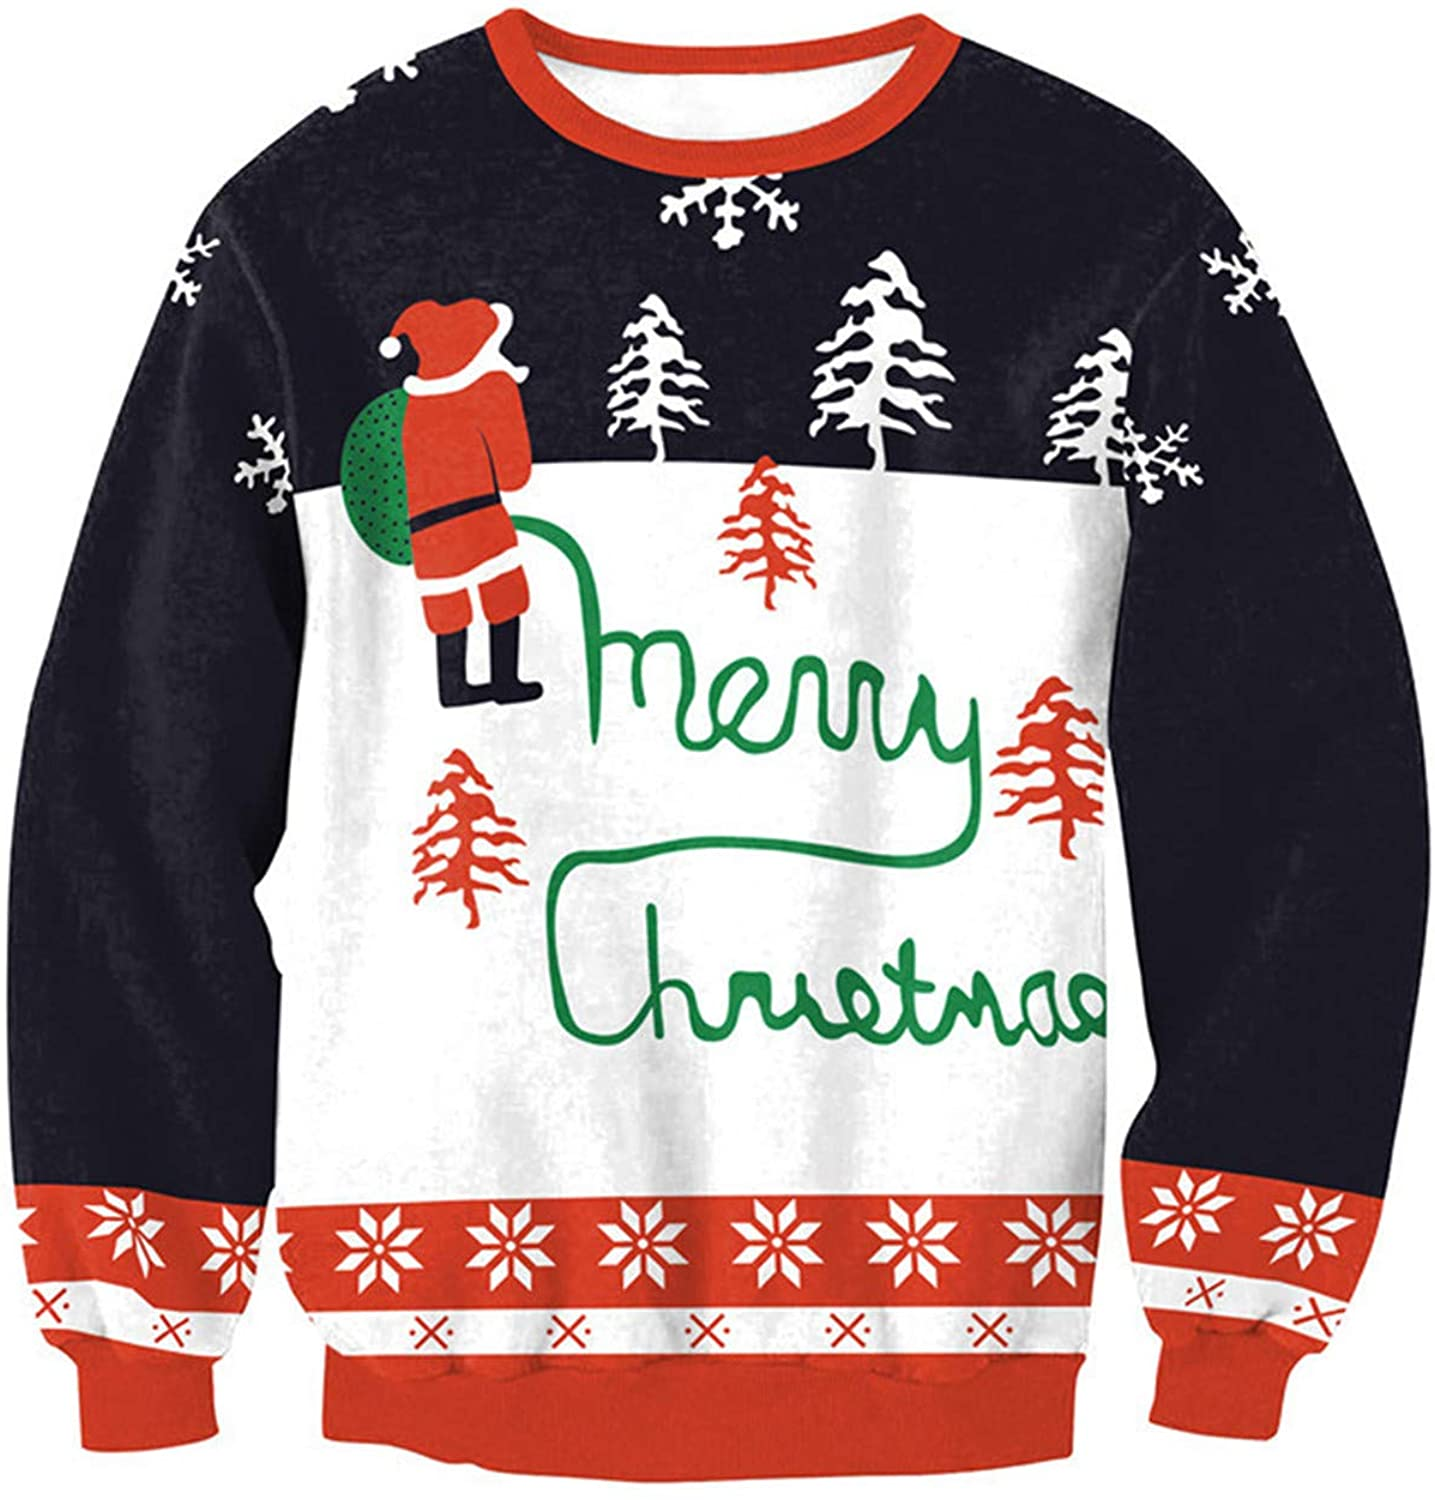 Soluo Ugly Christmas Sweater Company Men's Assorted Light-up Xmas Crew Neck Sweaters